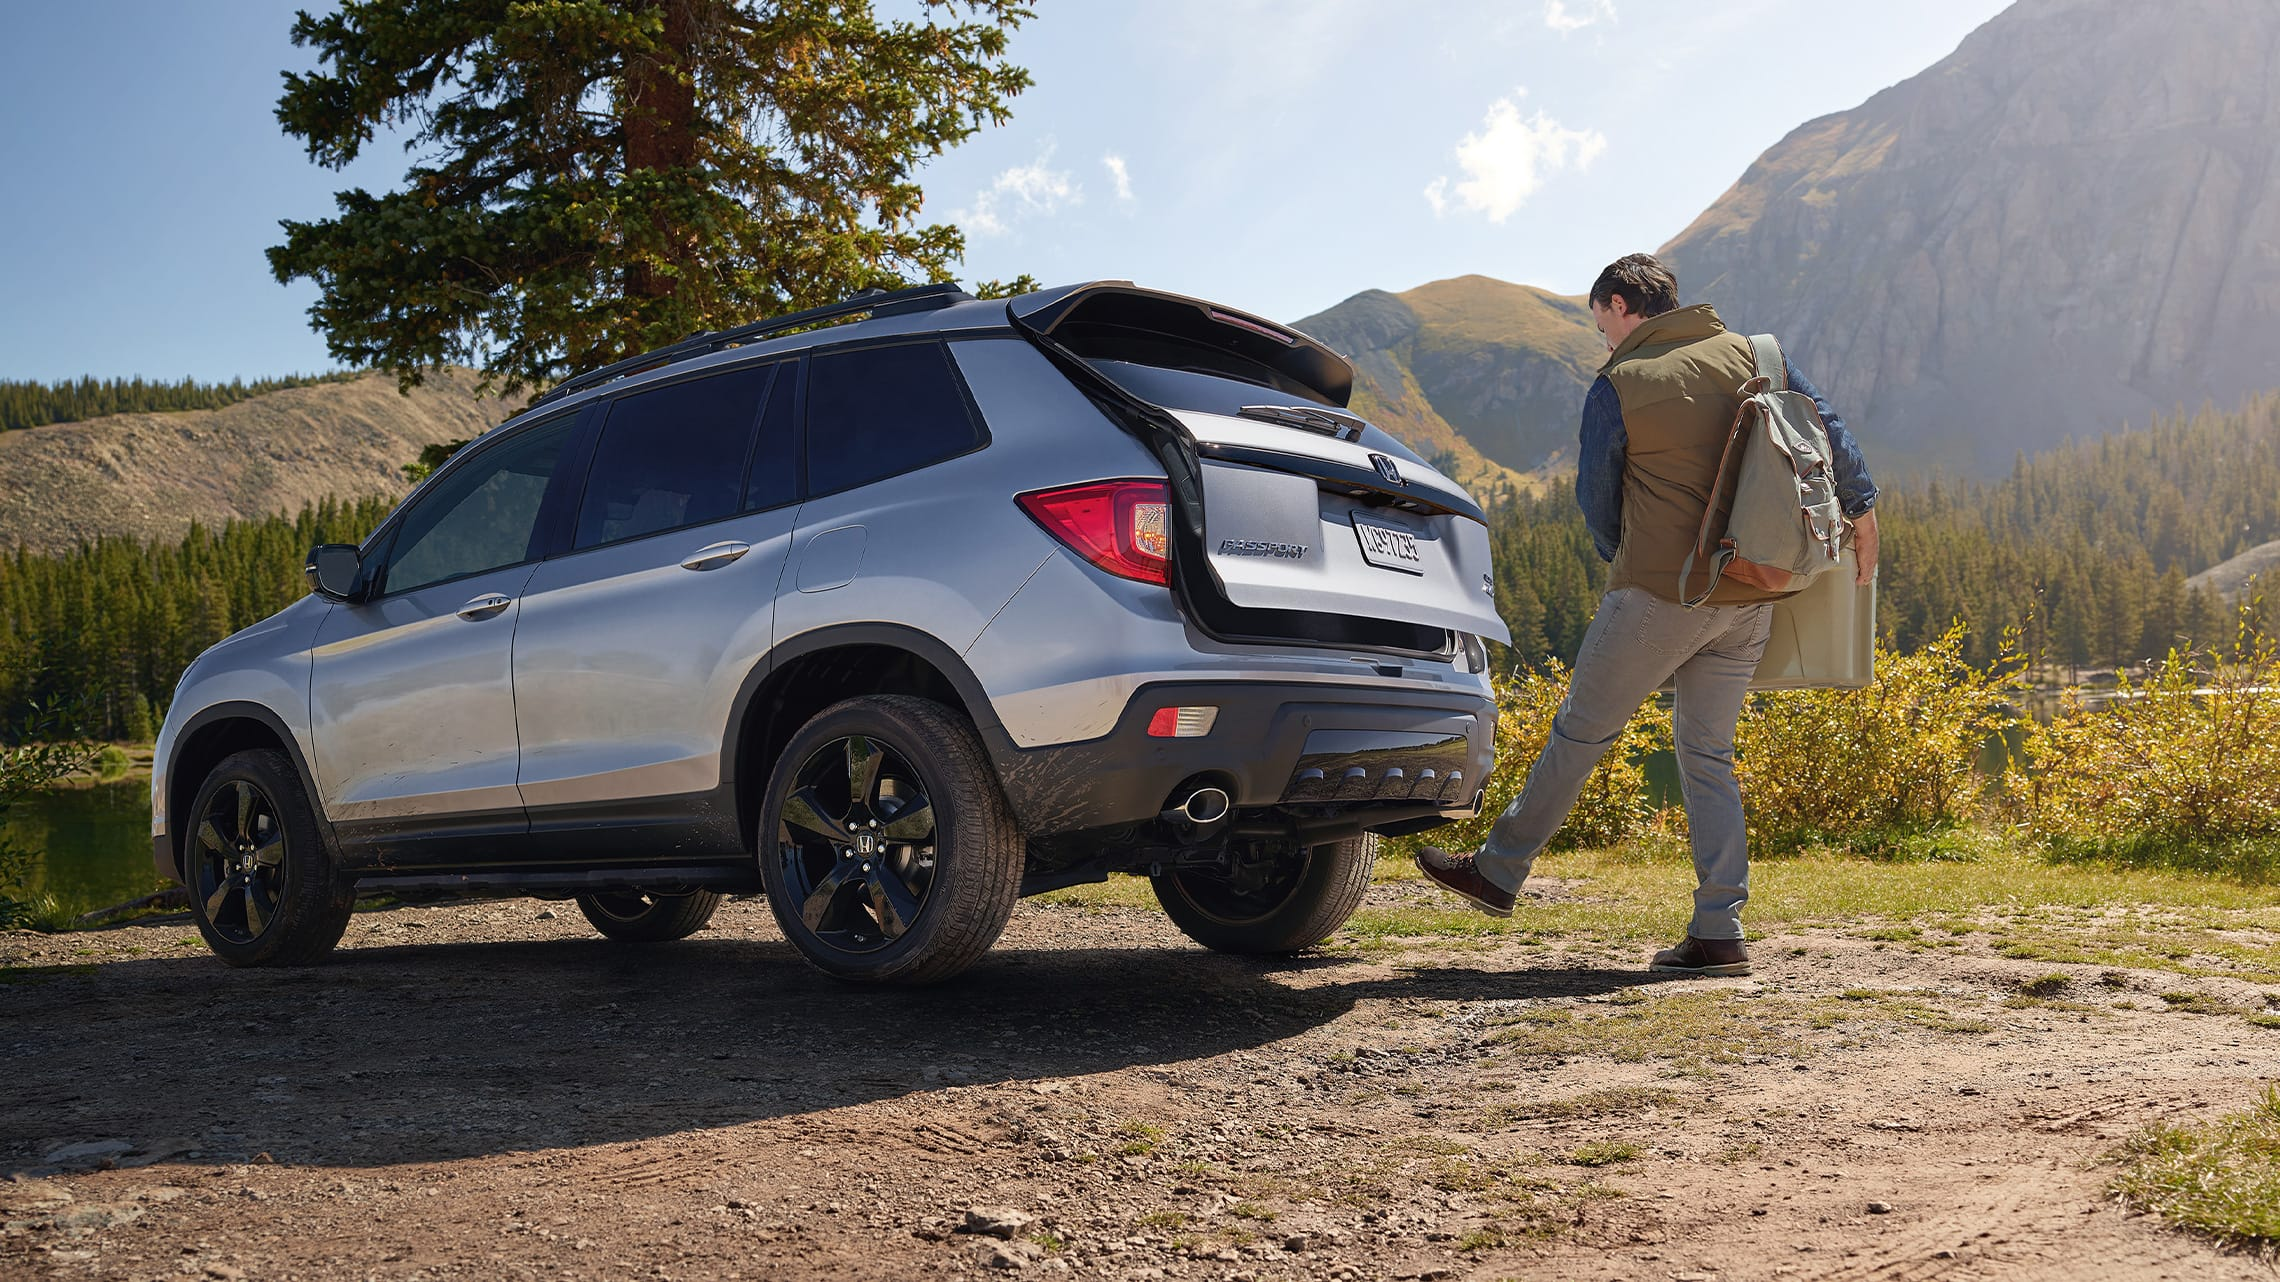 Driver-side rear view of the 2021 Honda Passport Elite in Lunar Silver Metallic, parked at campsite and demonstrating the hands-free access power tailgate feature.